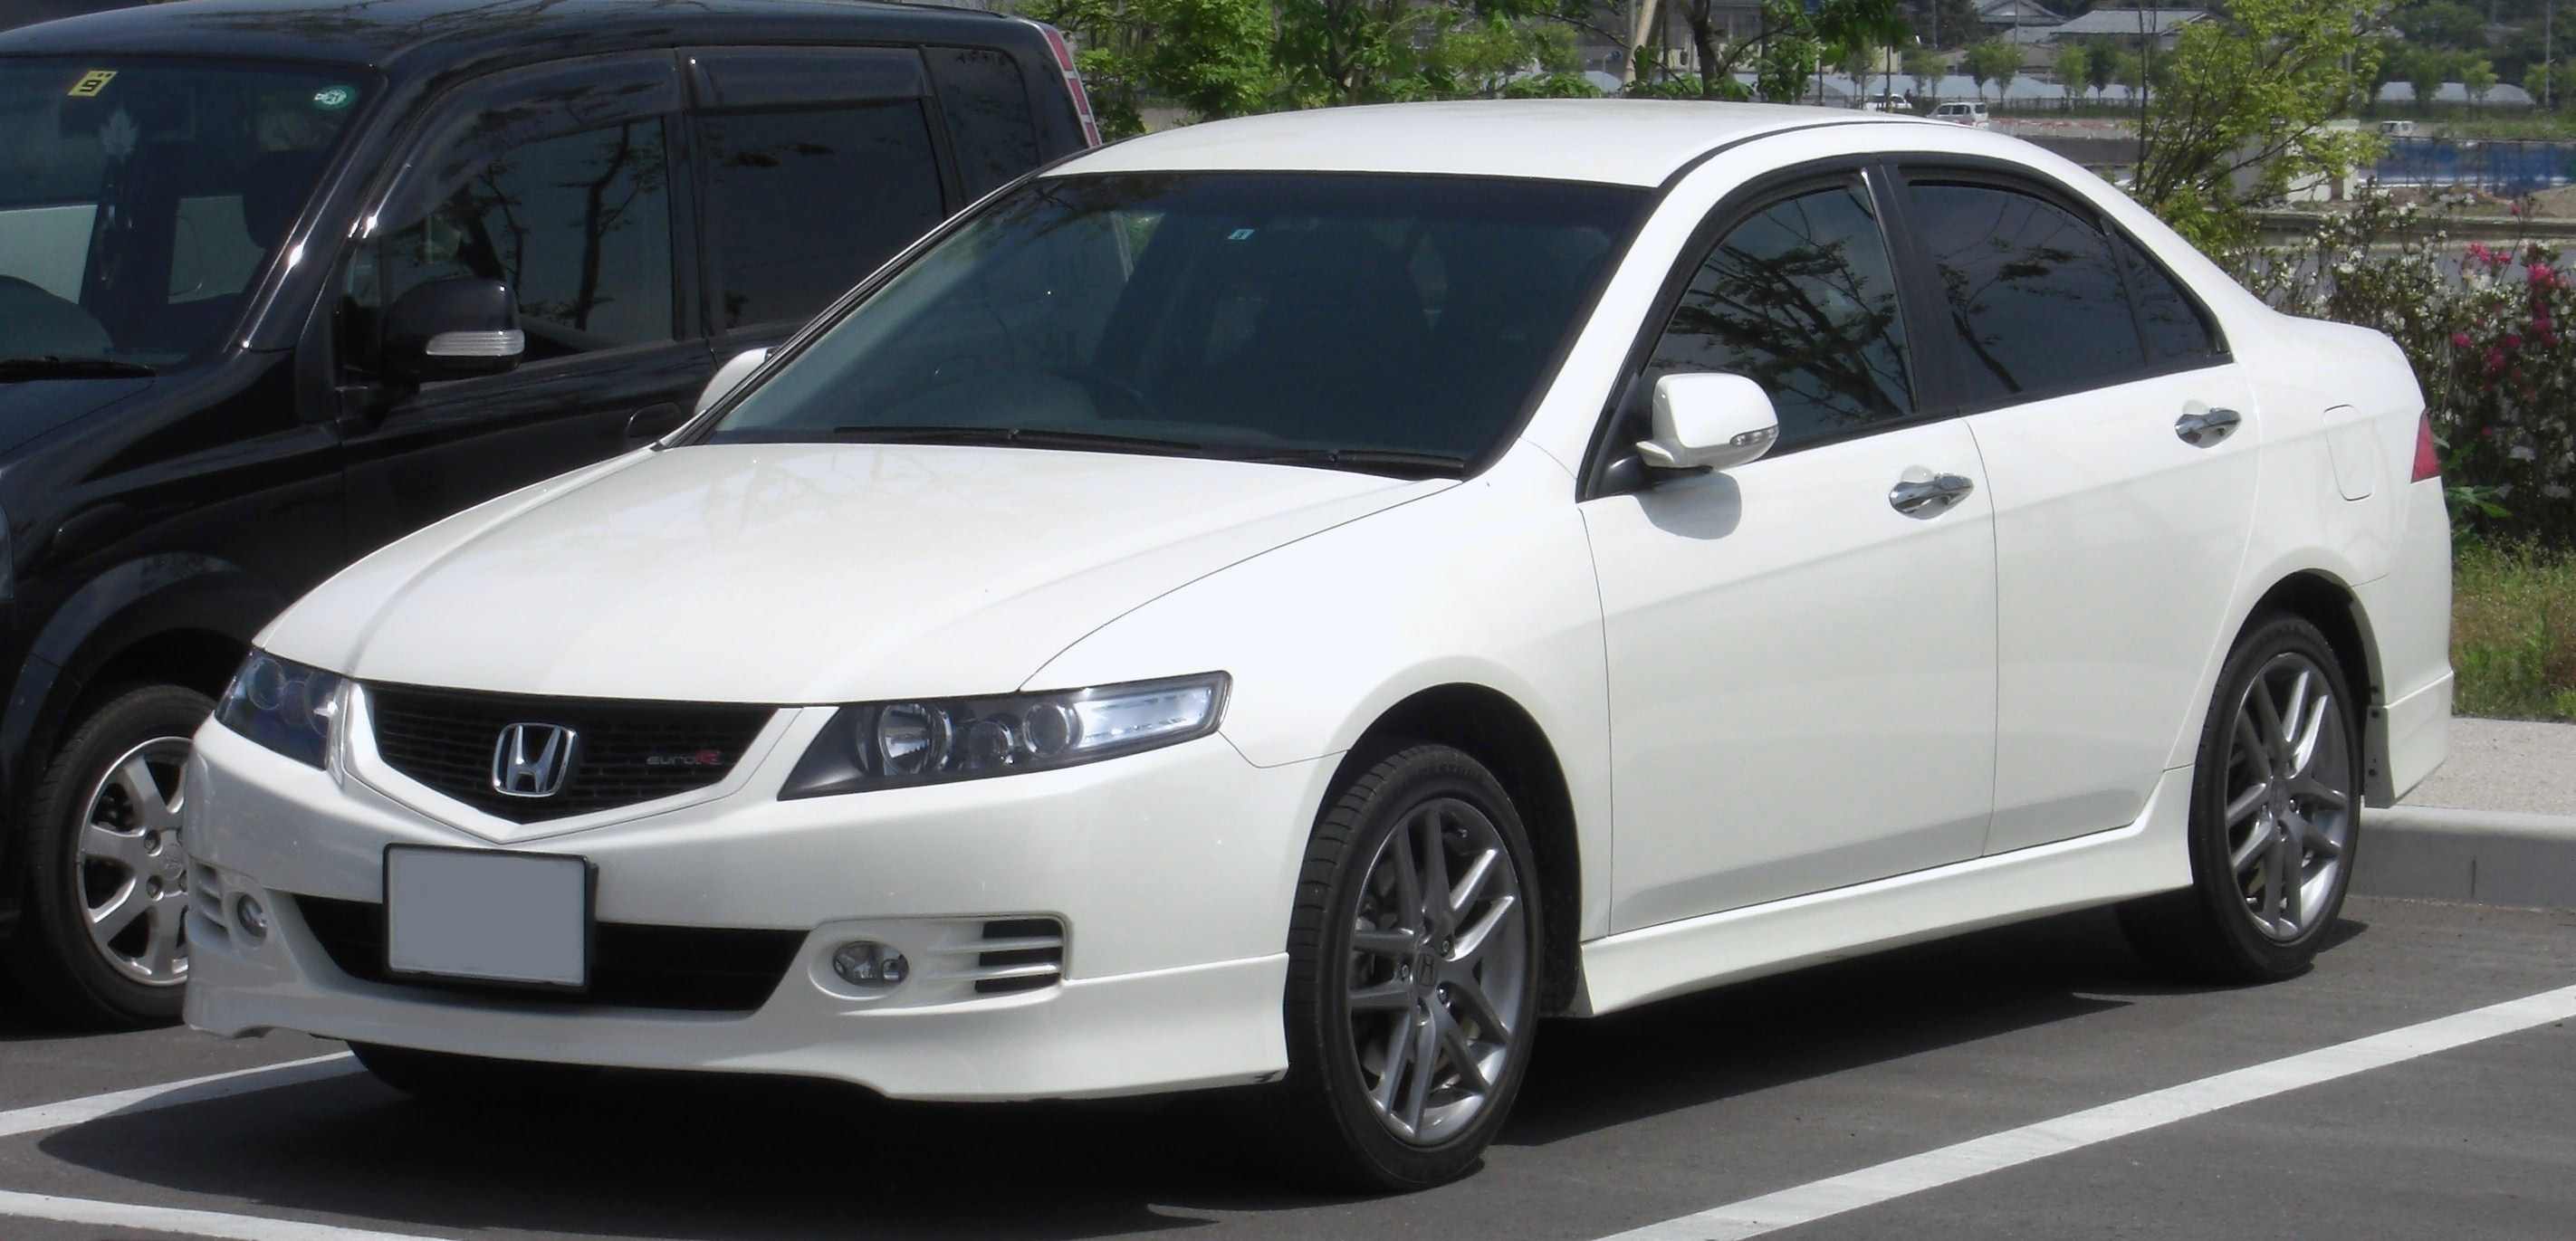 honda accord vii 2002 models #14